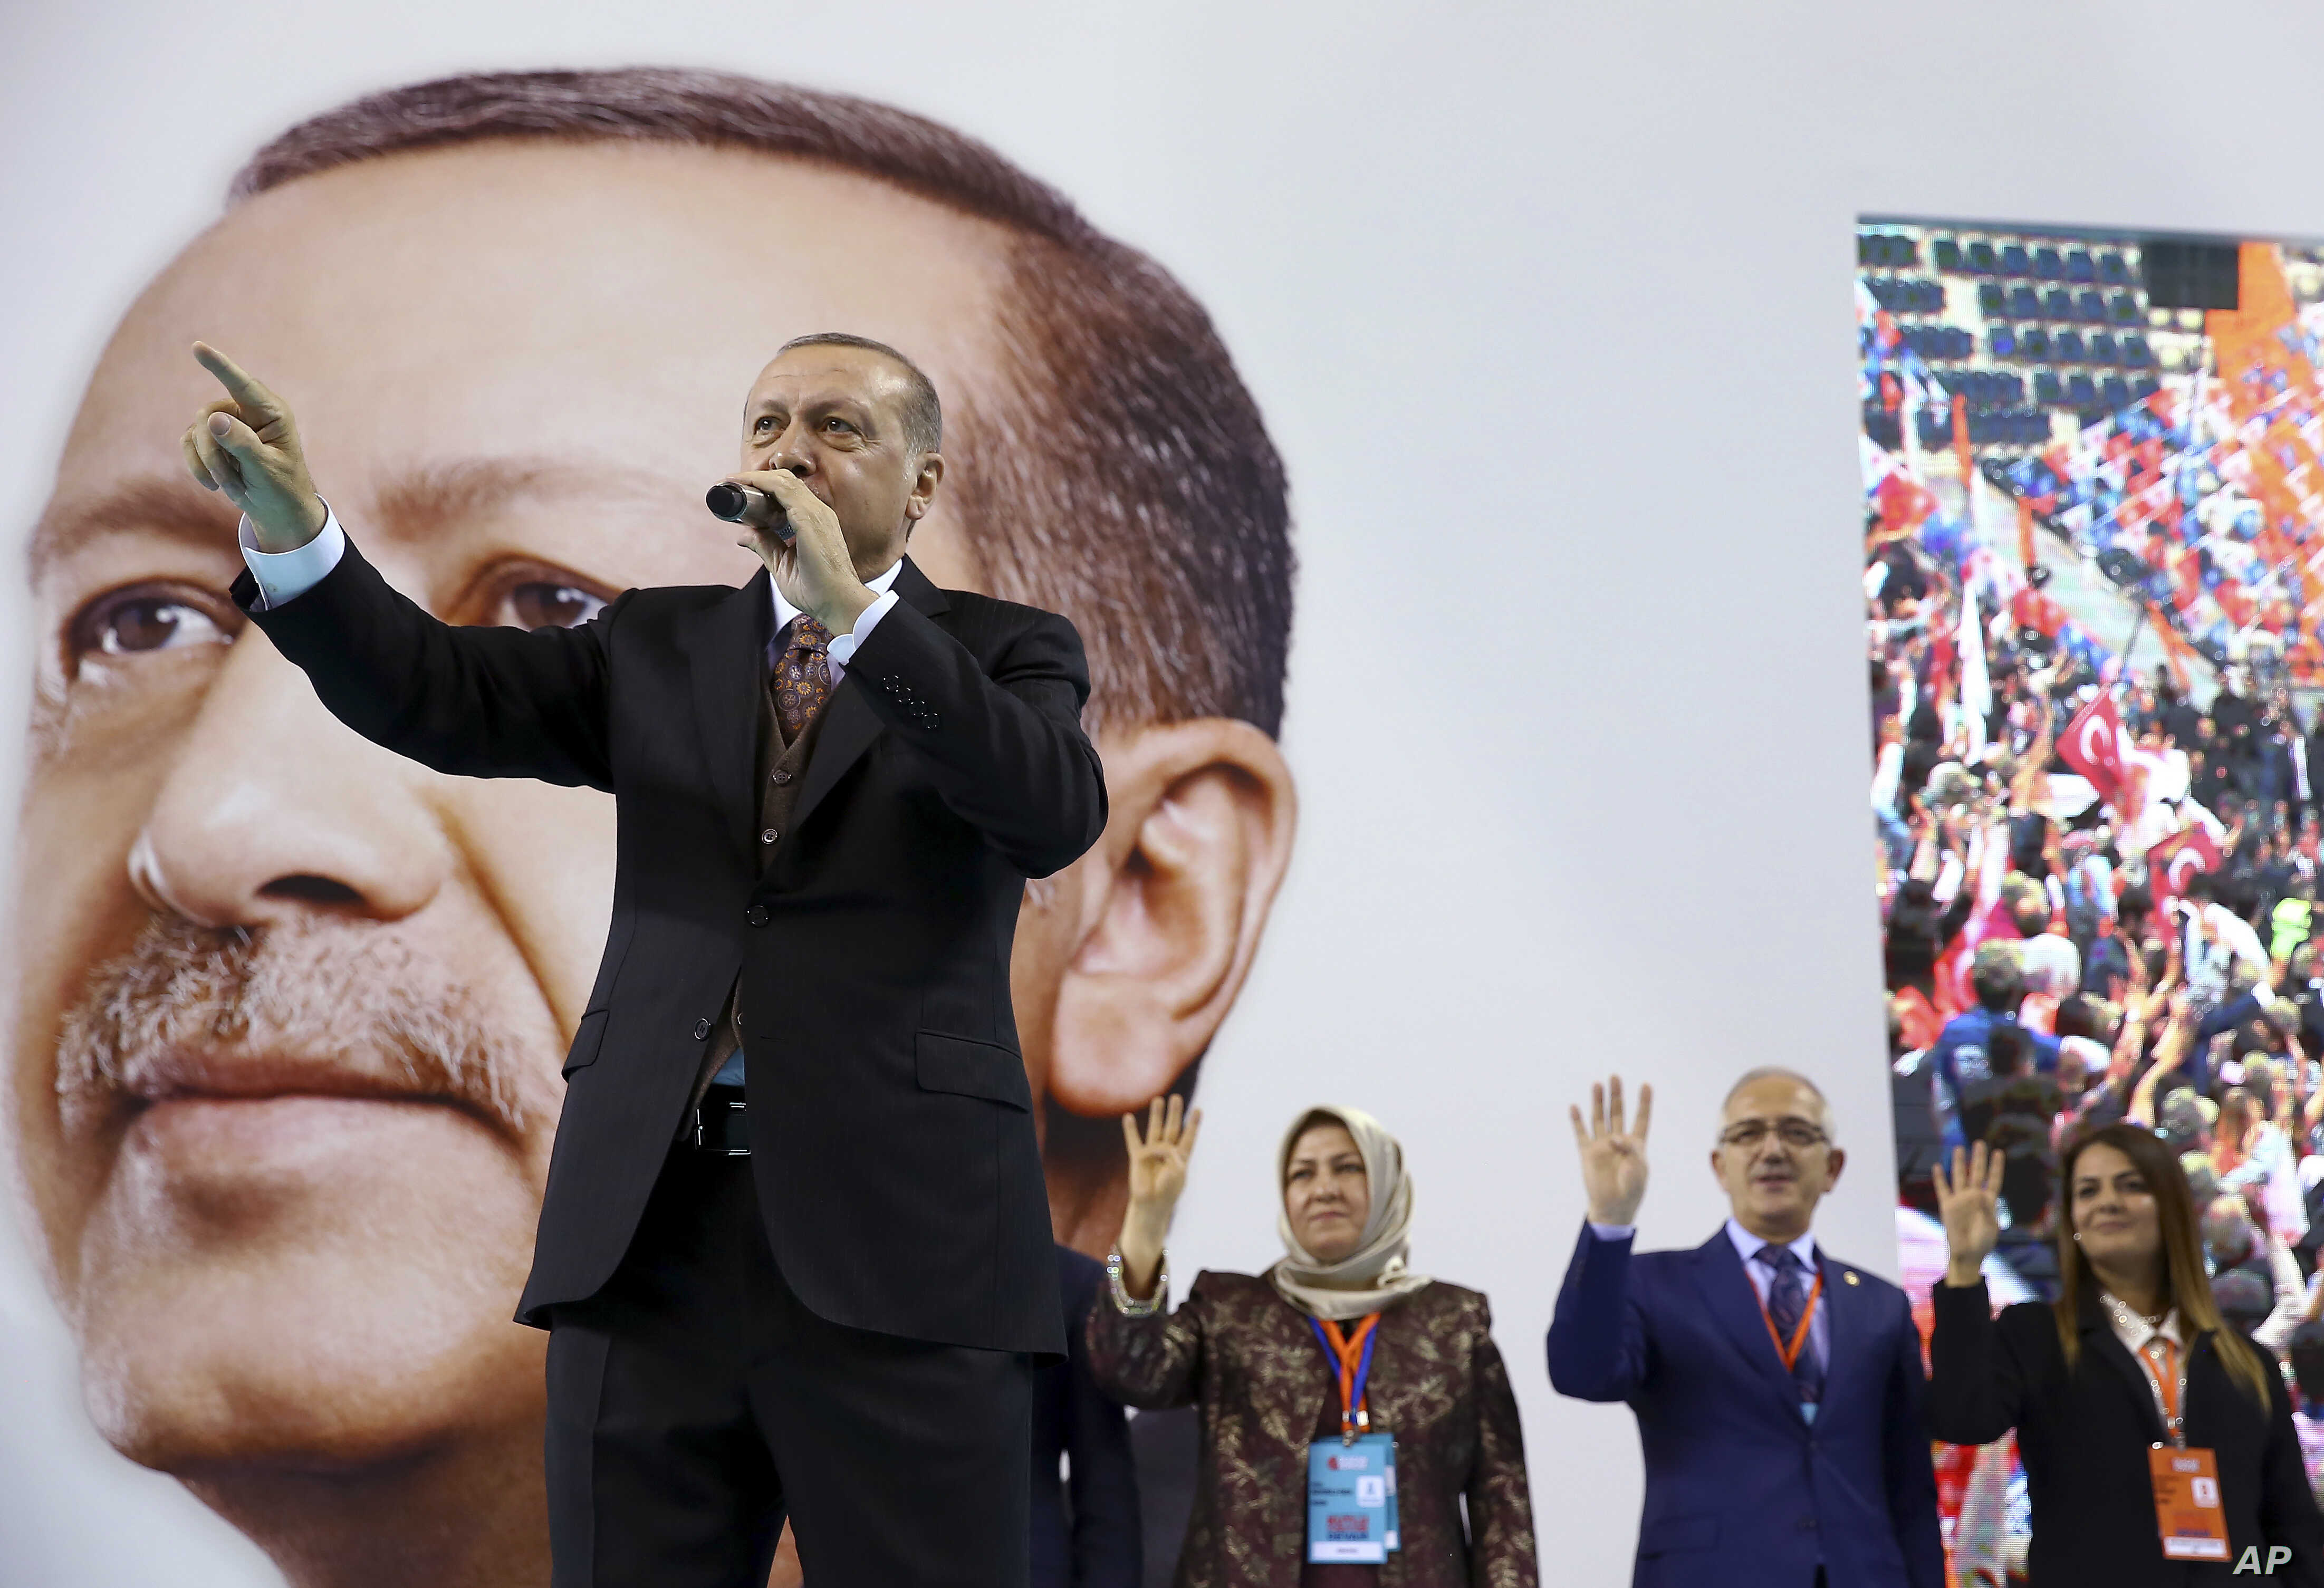 Turkey's President Recep Tayyip Erdogan gestures as he speaks during a rally of his ruling Justice and Development Party's supporters, in Mersin, southern Turkey, March 10, 2018. Erdogan has criticized NATO for not supporting the country's military o...